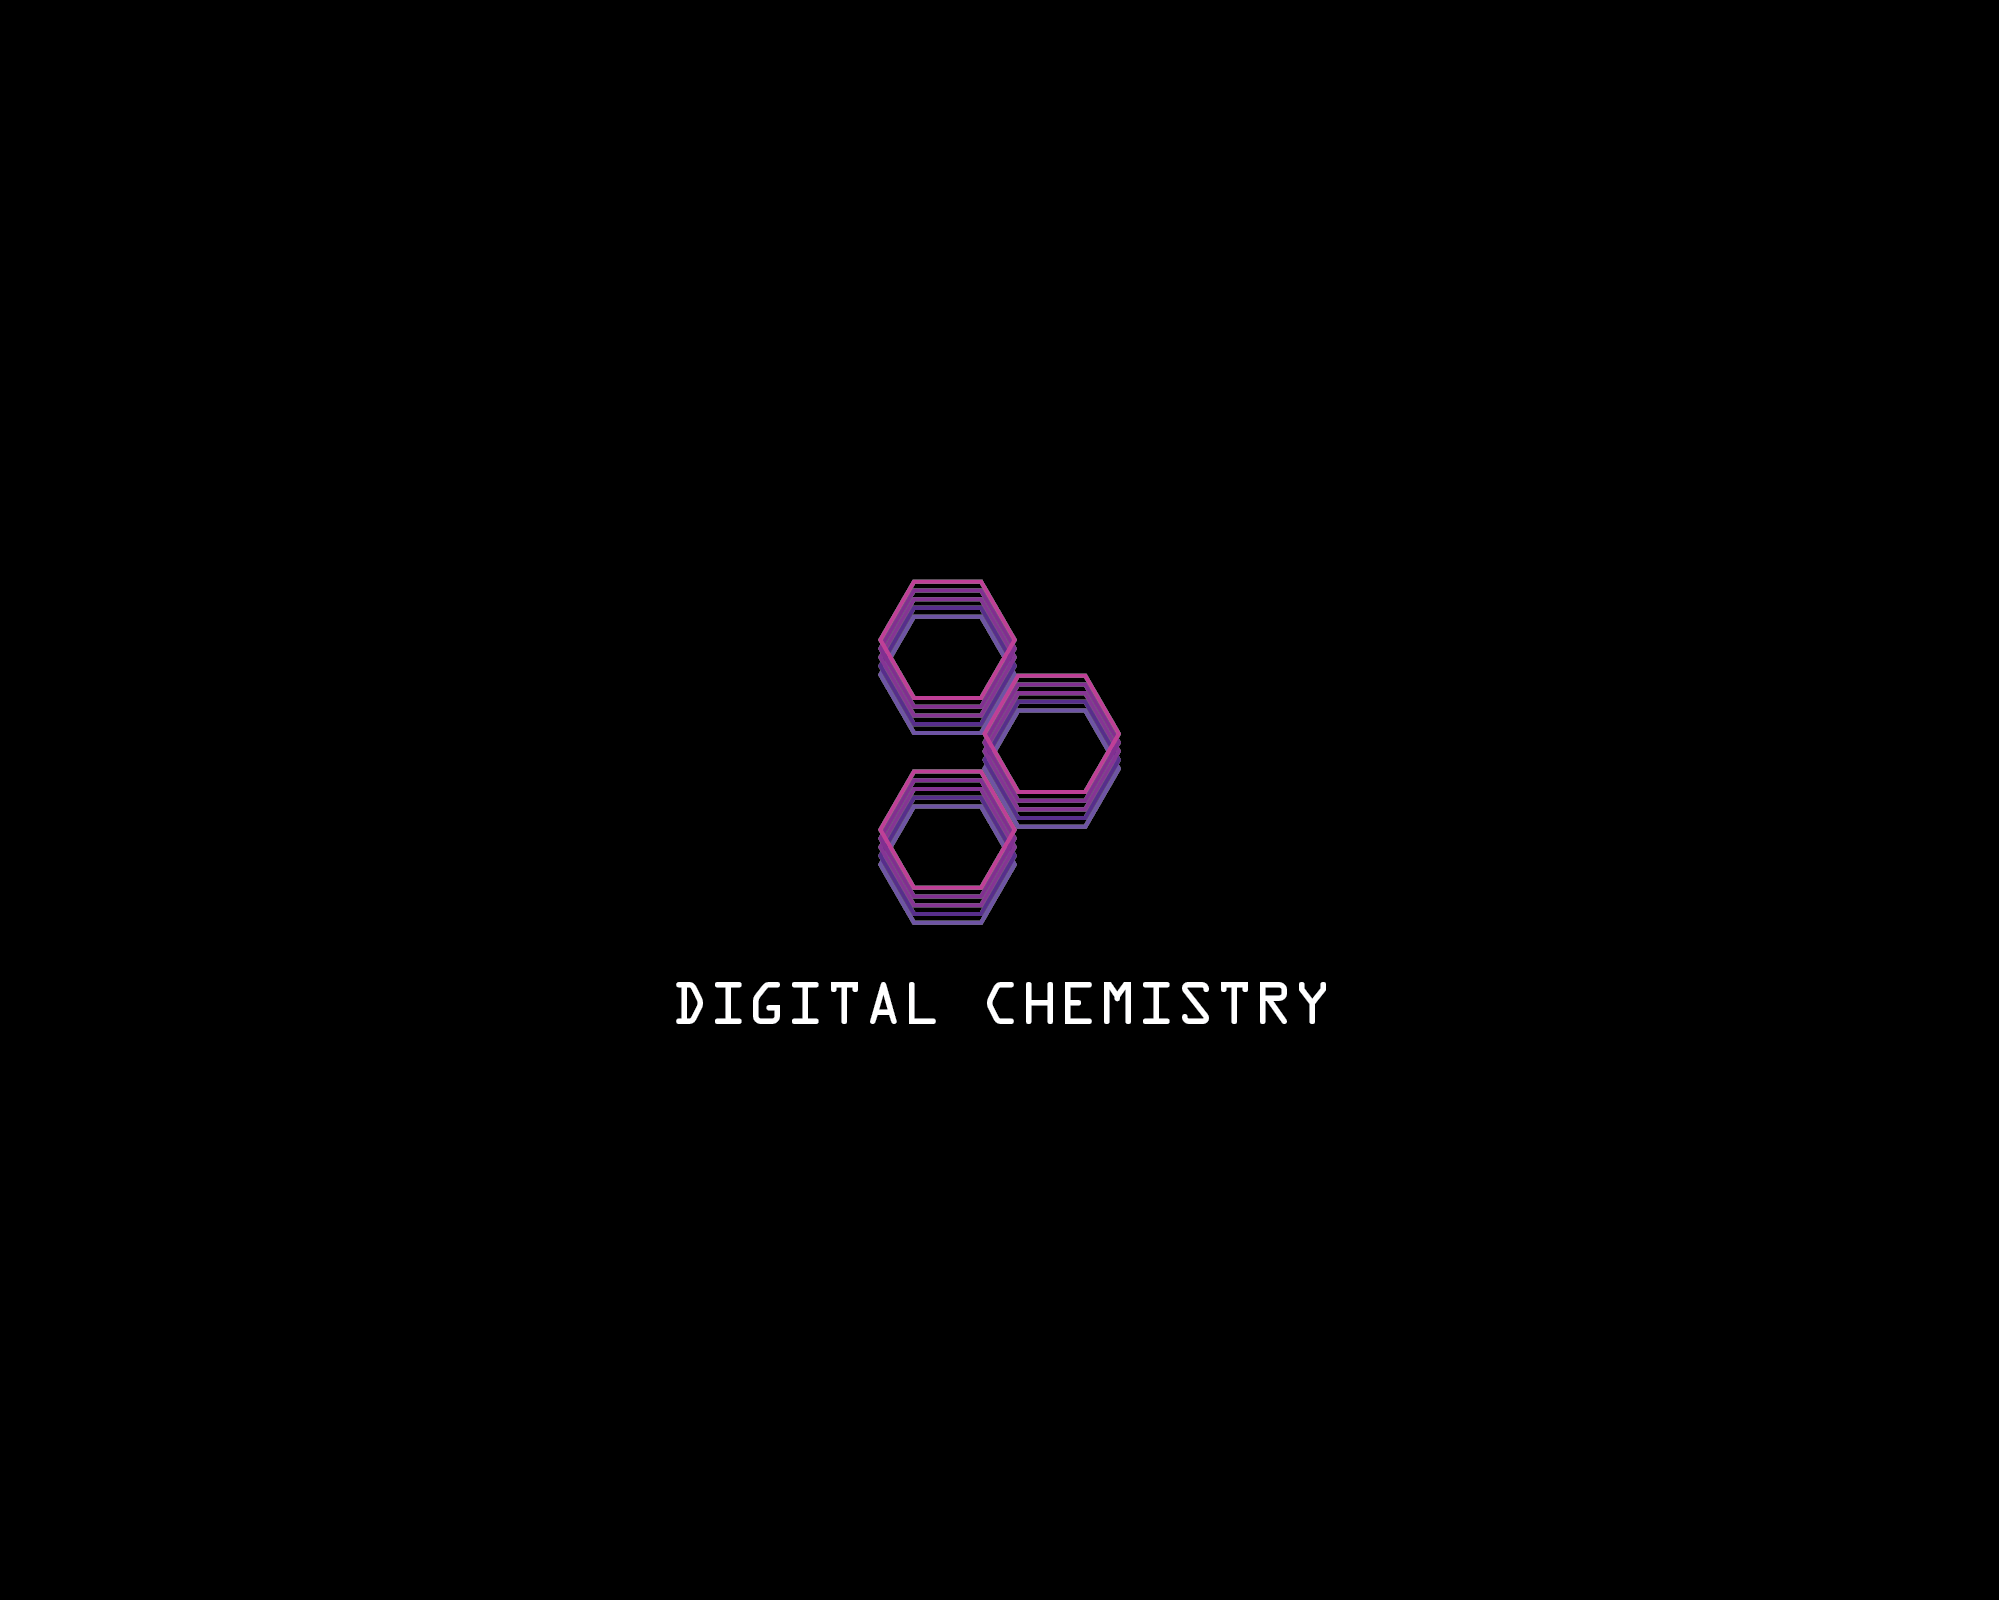 DIGITAL CHEMISTRY | LOGO DESIGN